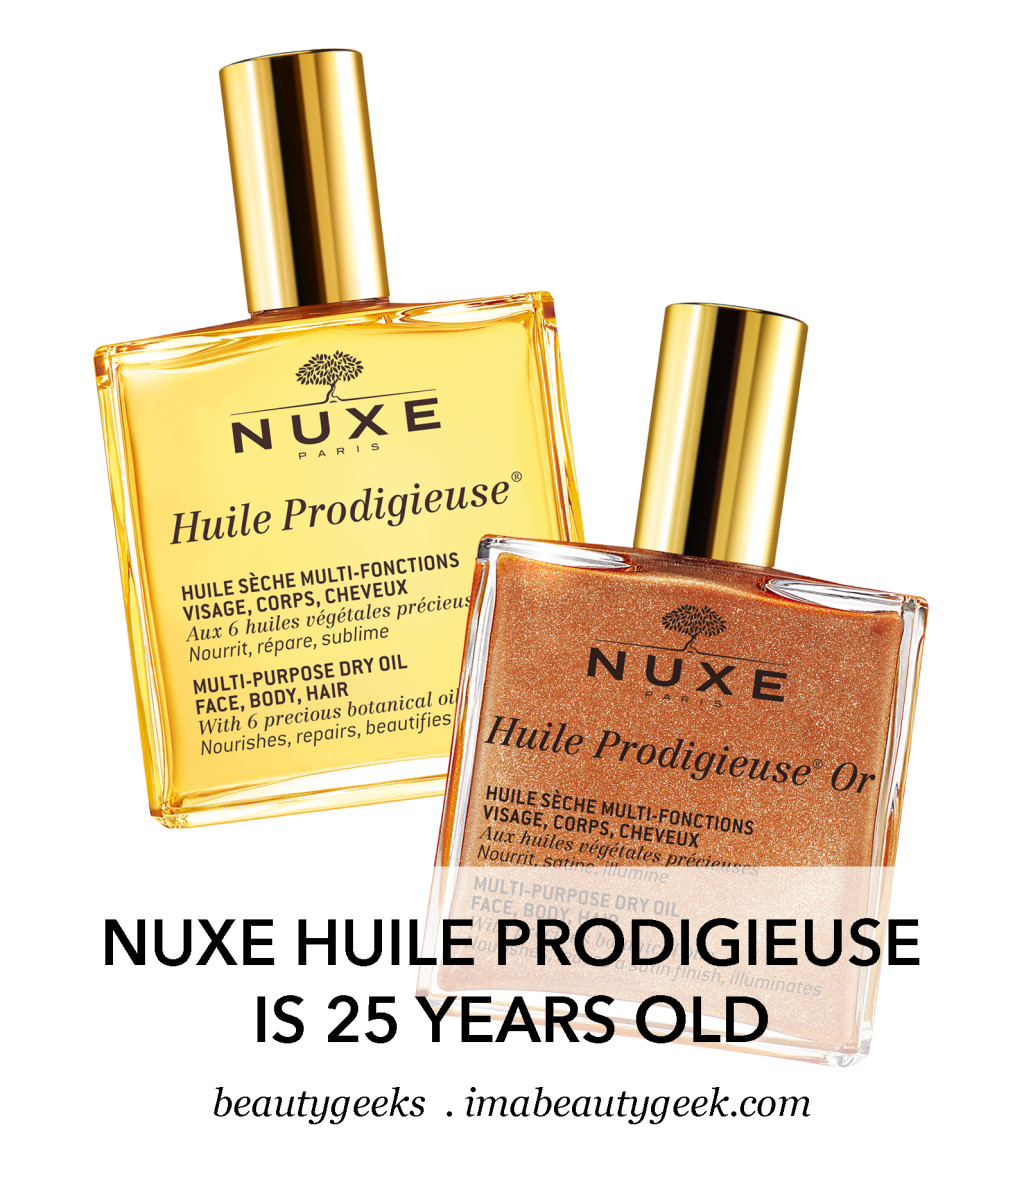 Nuxe Huile Prodigeuse celebrates 25 years